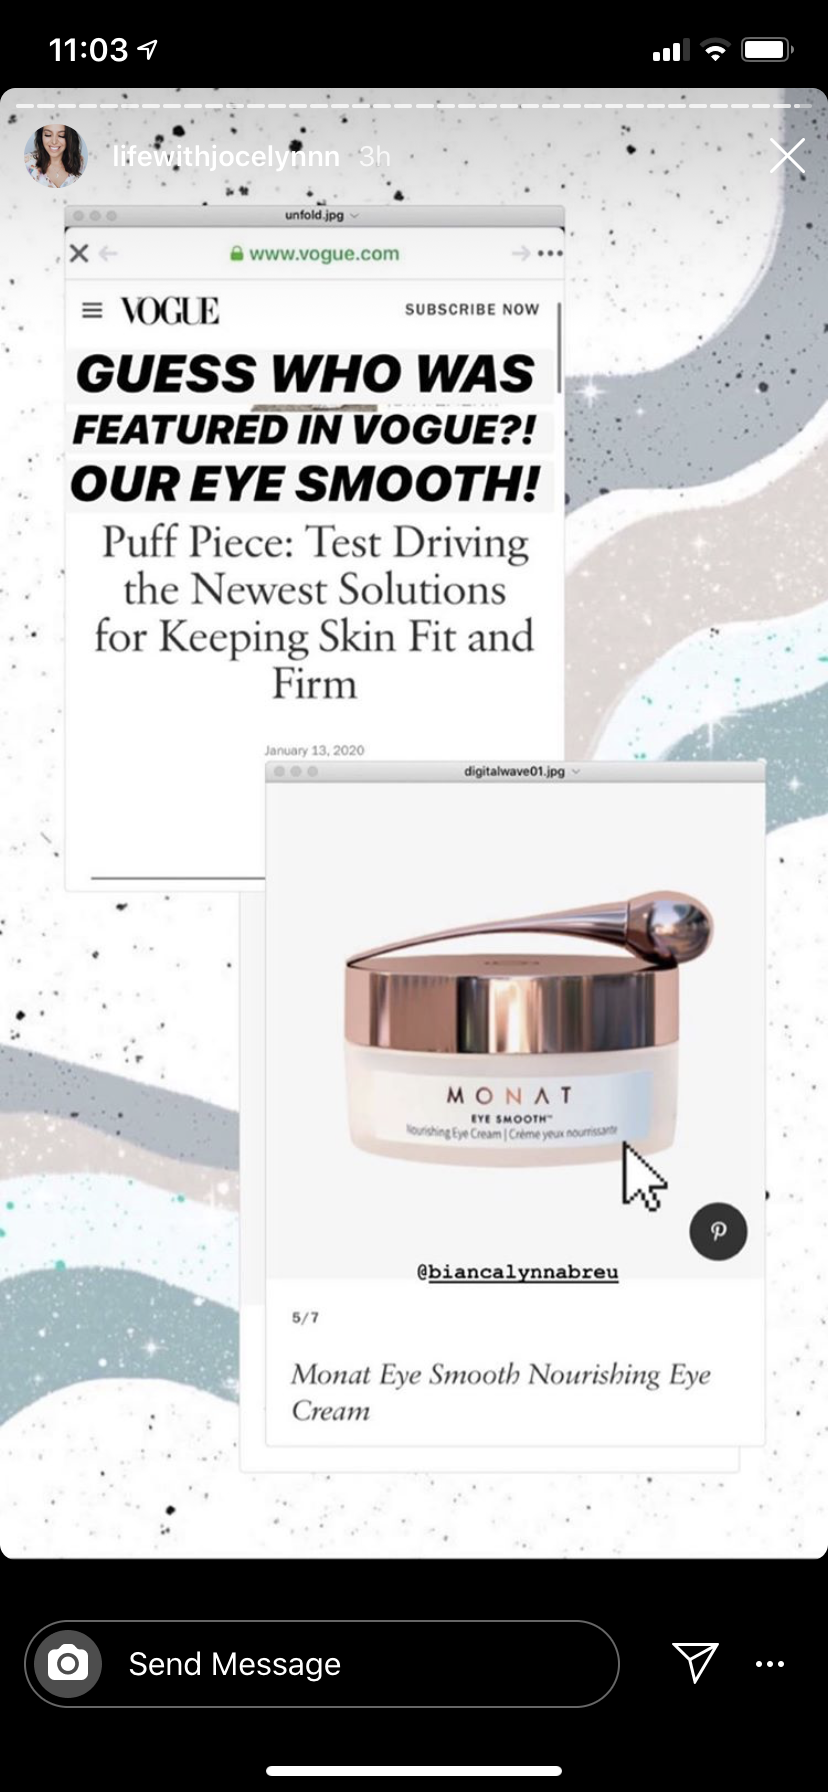 Eye Smooth In 2020 Monat Anti Aging Skin Products Aging Hair Care